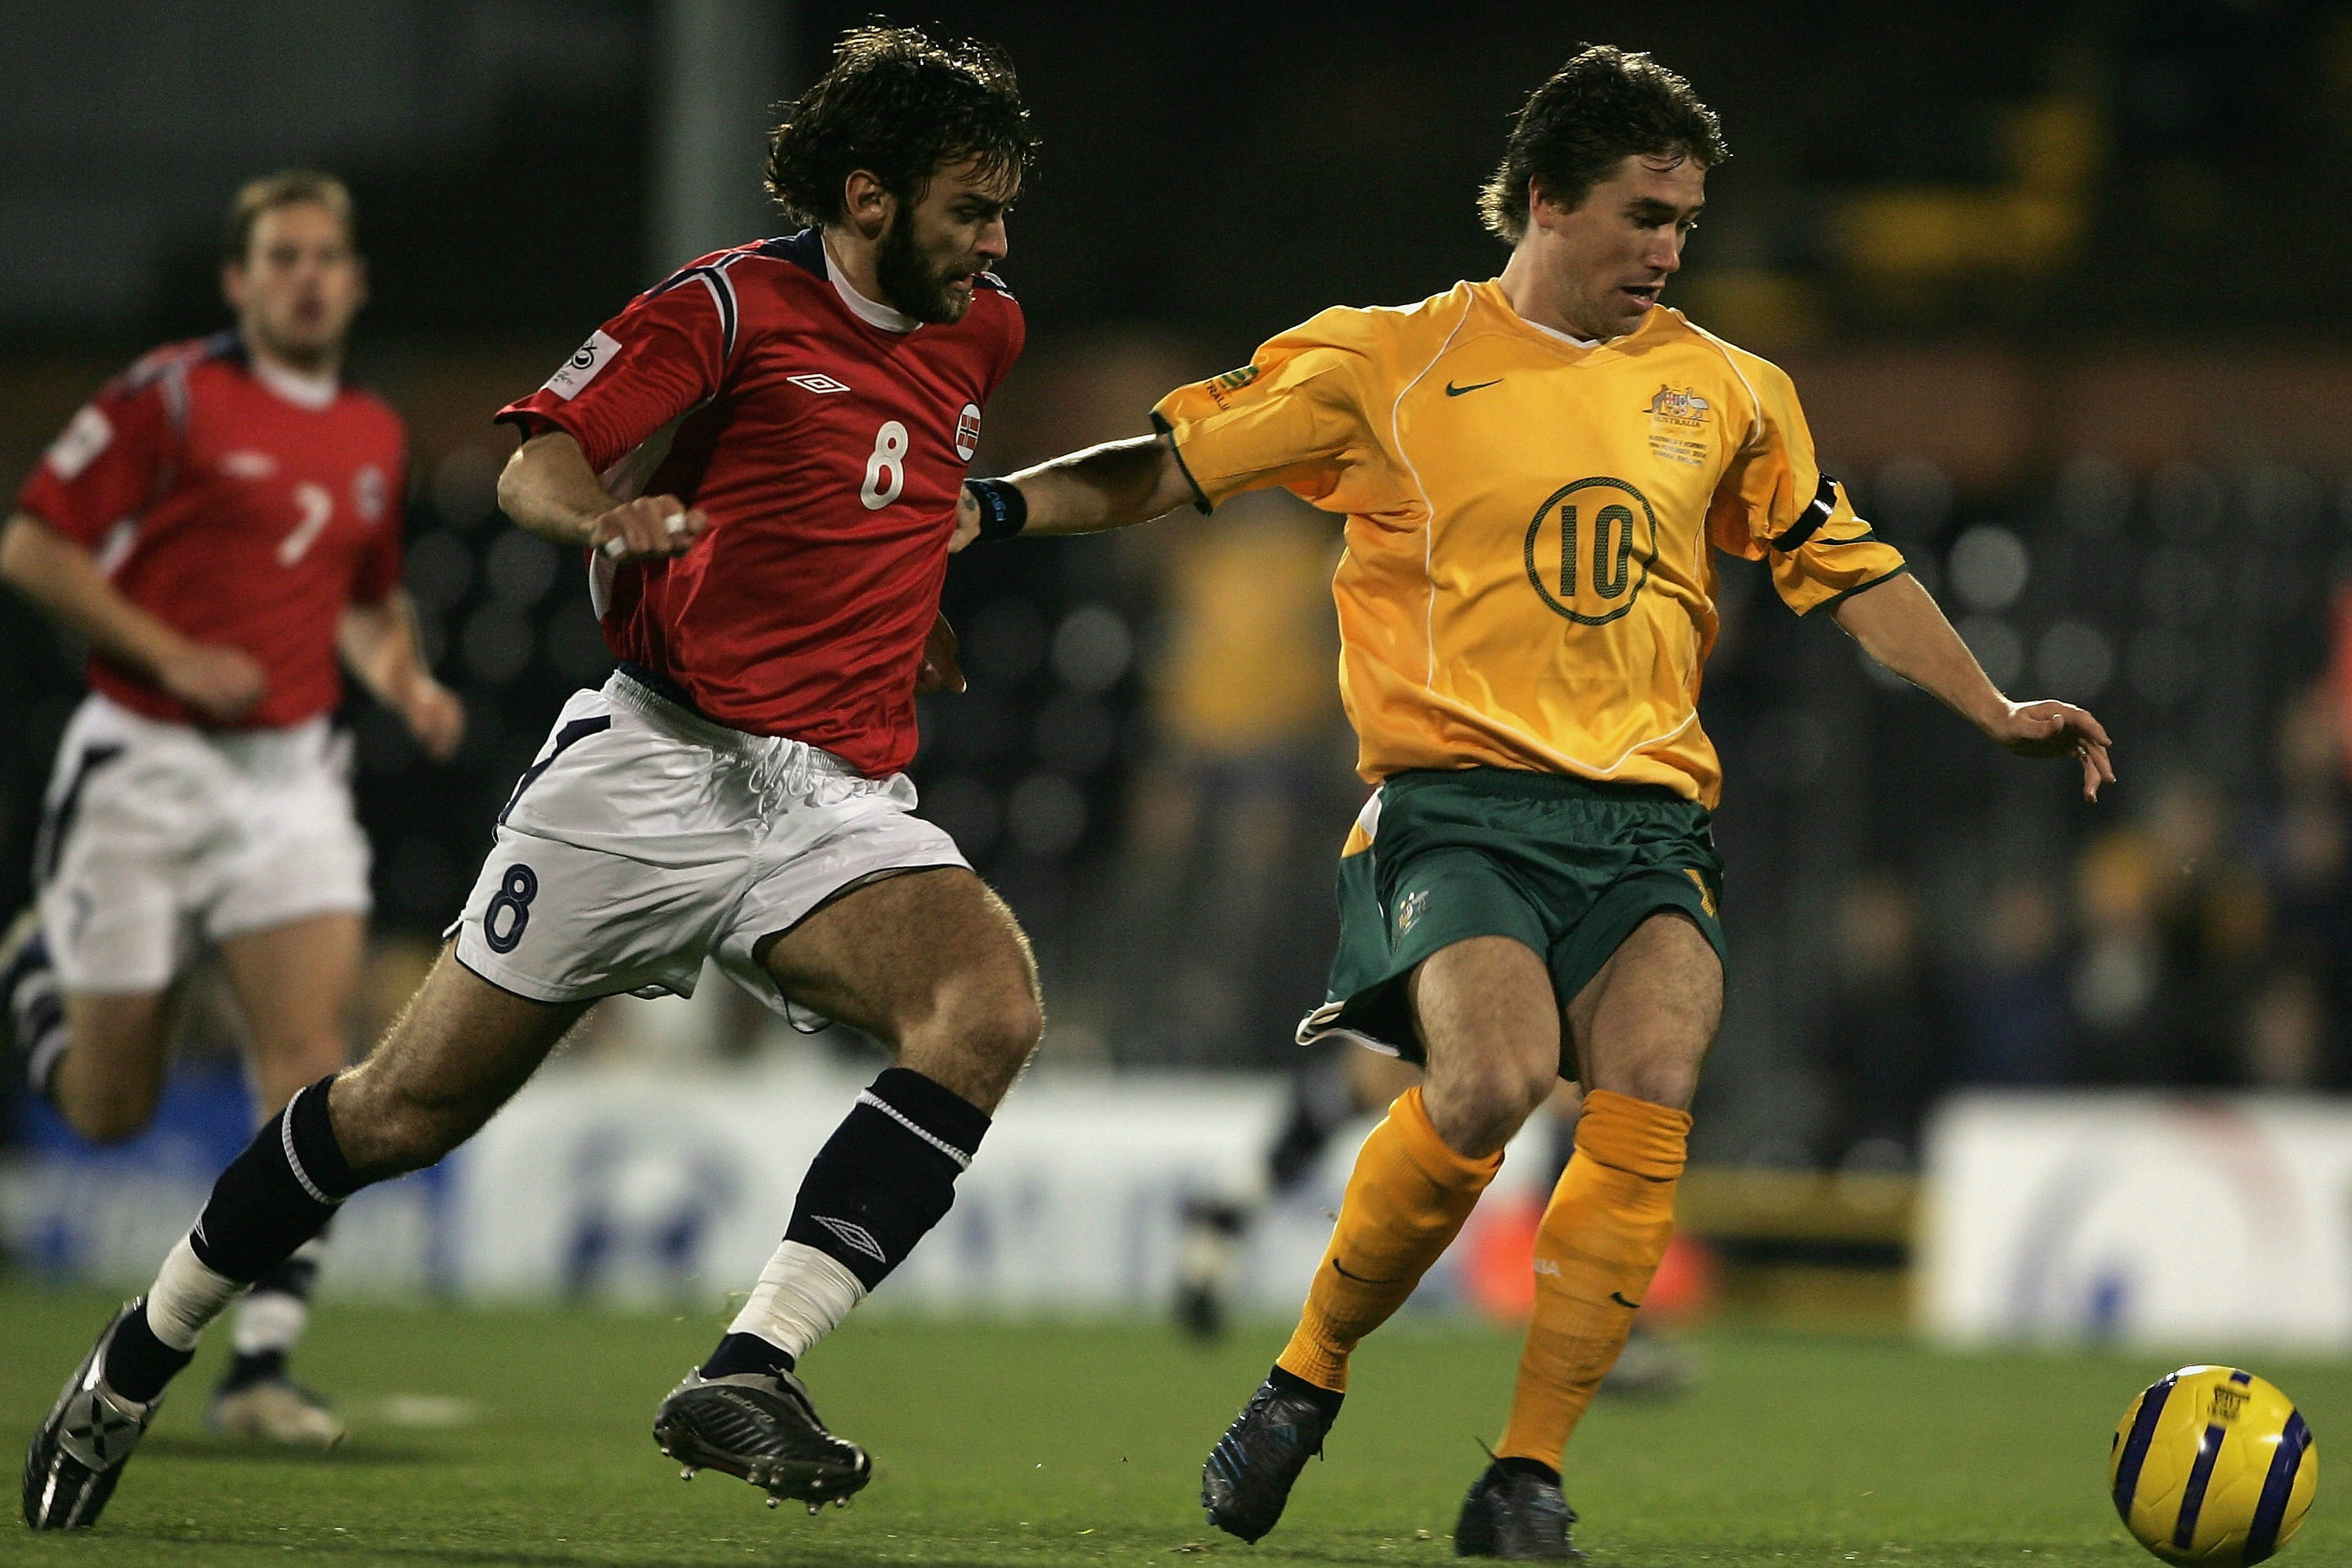 Harry Kewell was part of a star-studded Australian side against Norway.